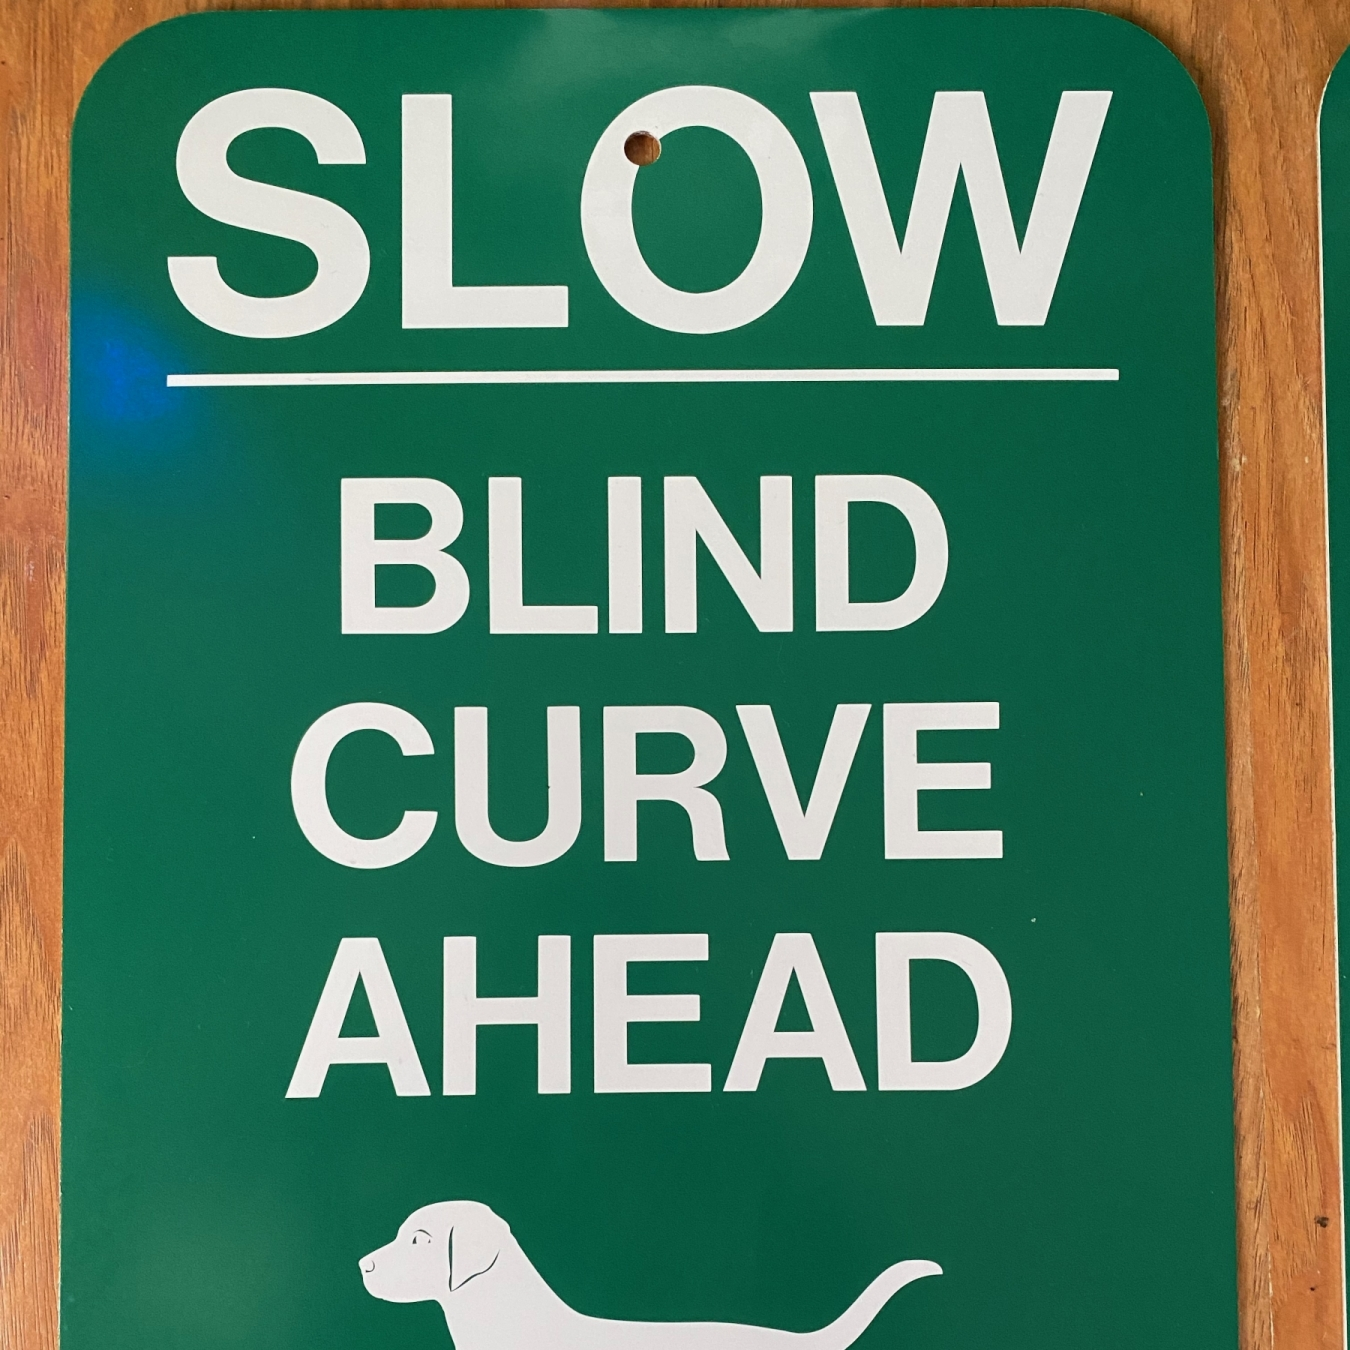 Slow Blind closeup